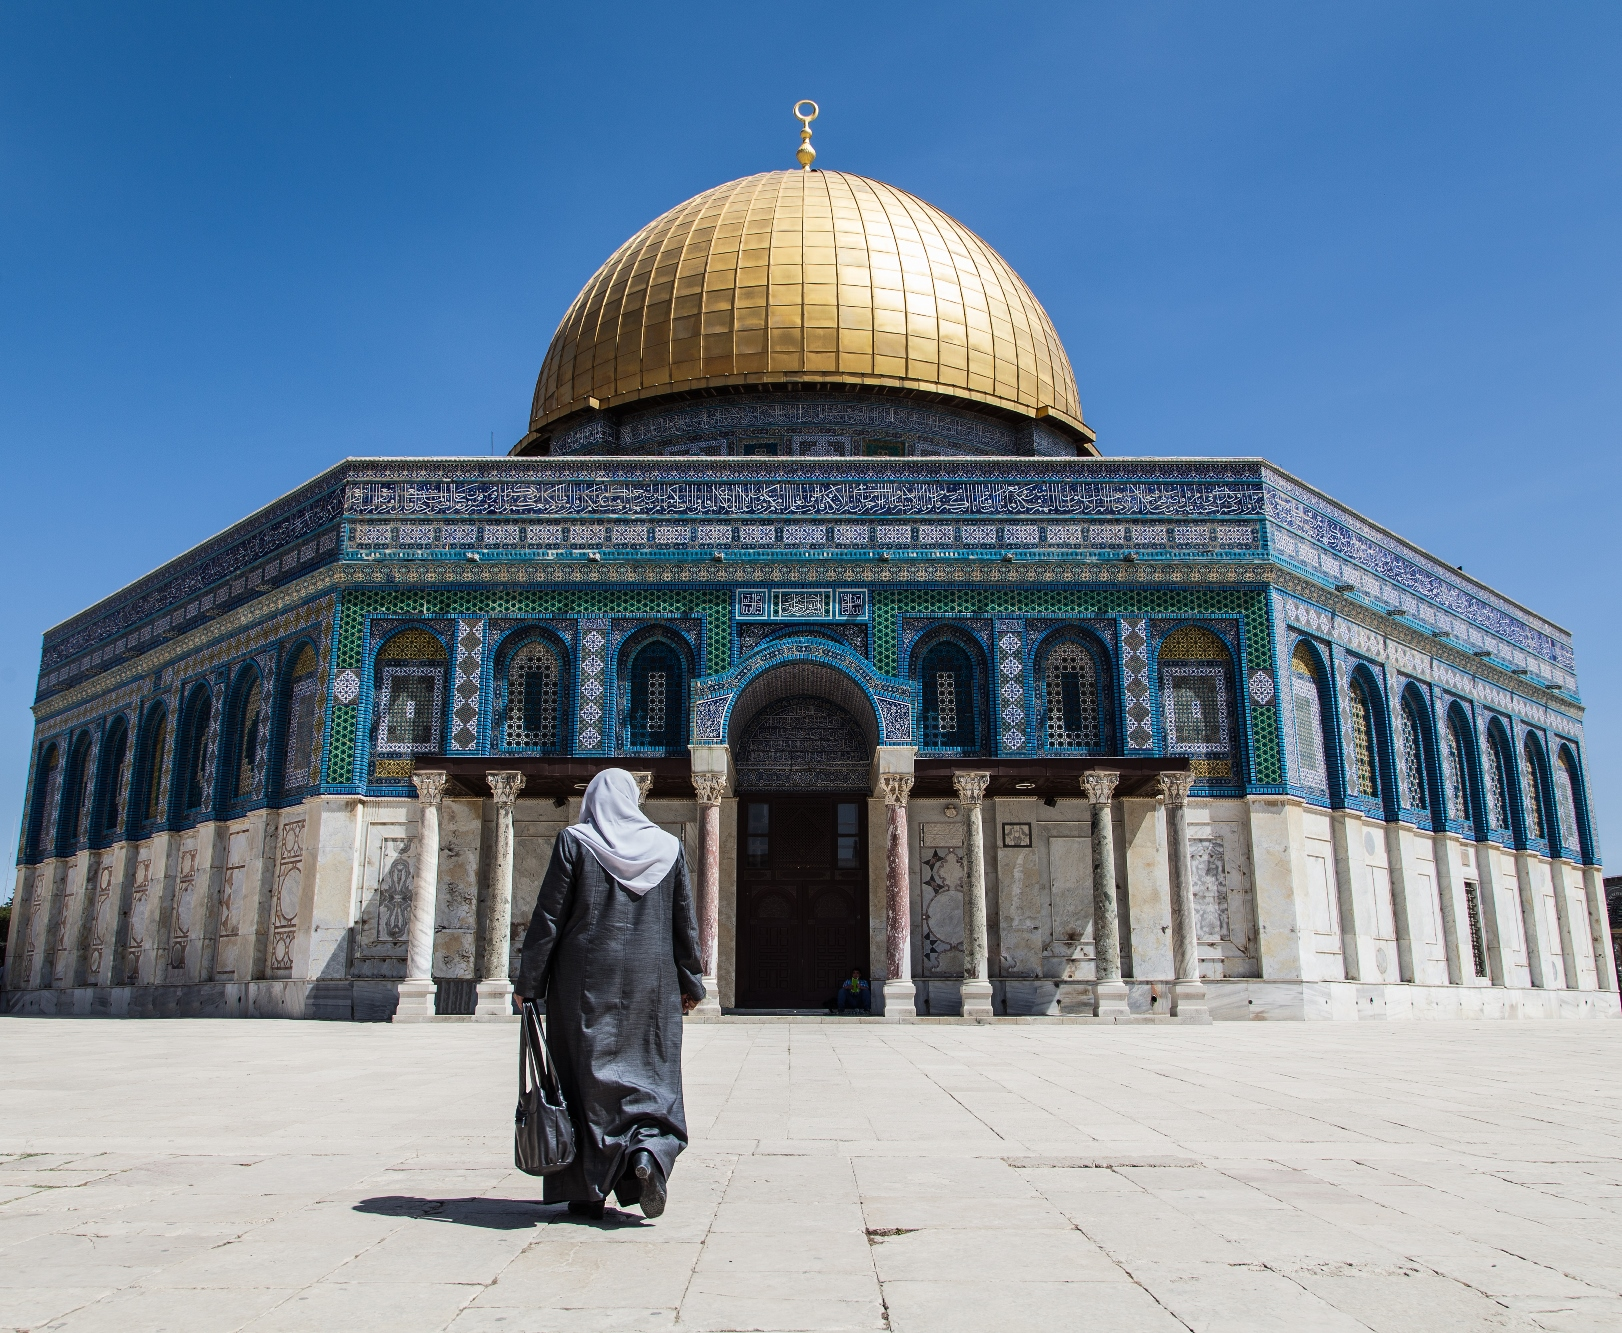 Dome of the Rock in Jerusalem. Photo by Tomer Eliash